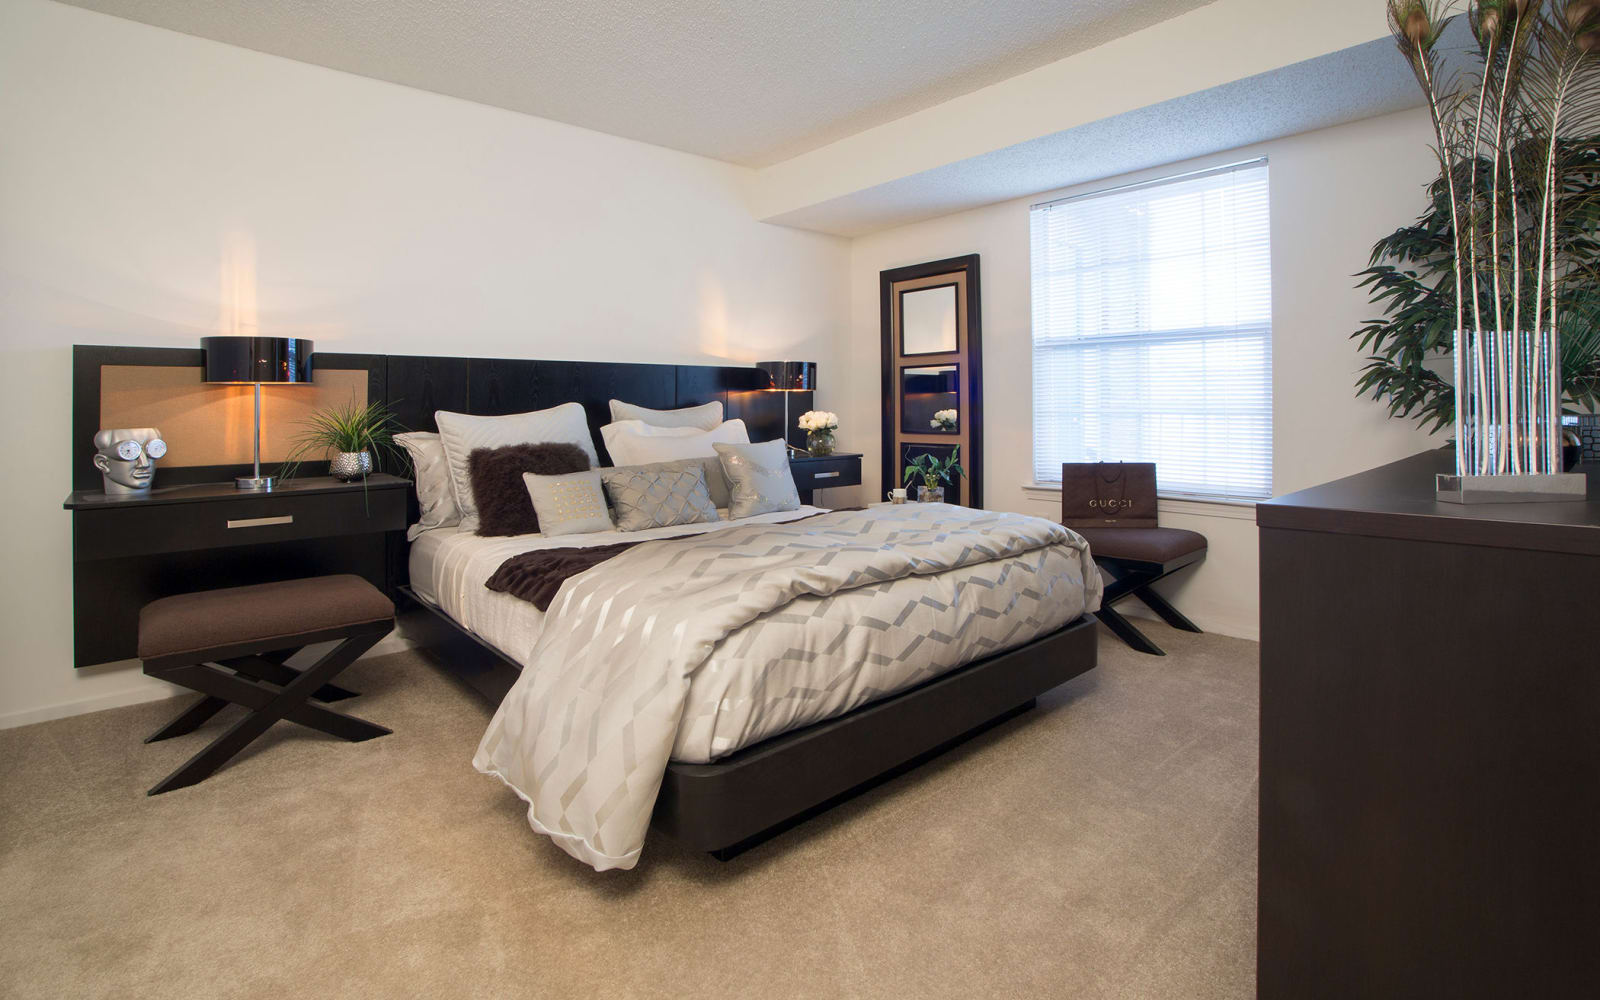 Master bedroom at Citation Club in Farmington Hills, Michigan